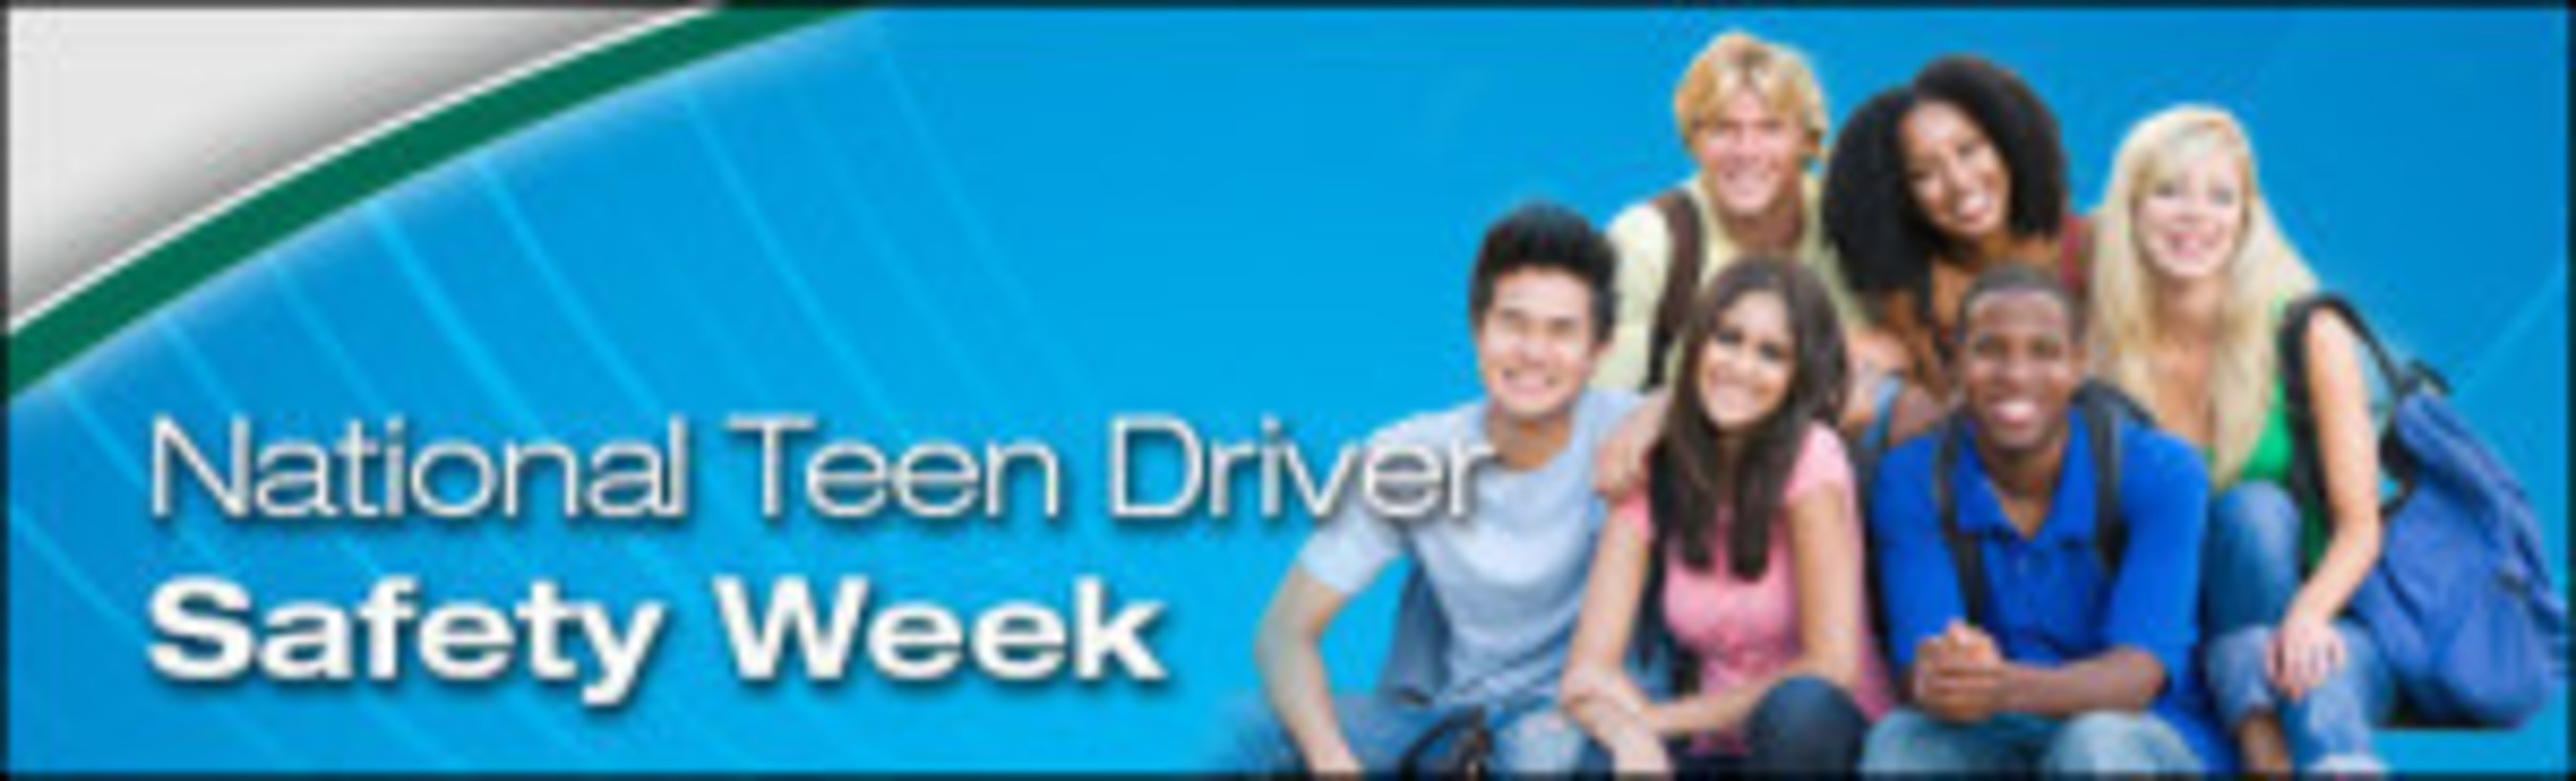 National Teen Driver Safety Week - A New Blog Post Provides More Information!